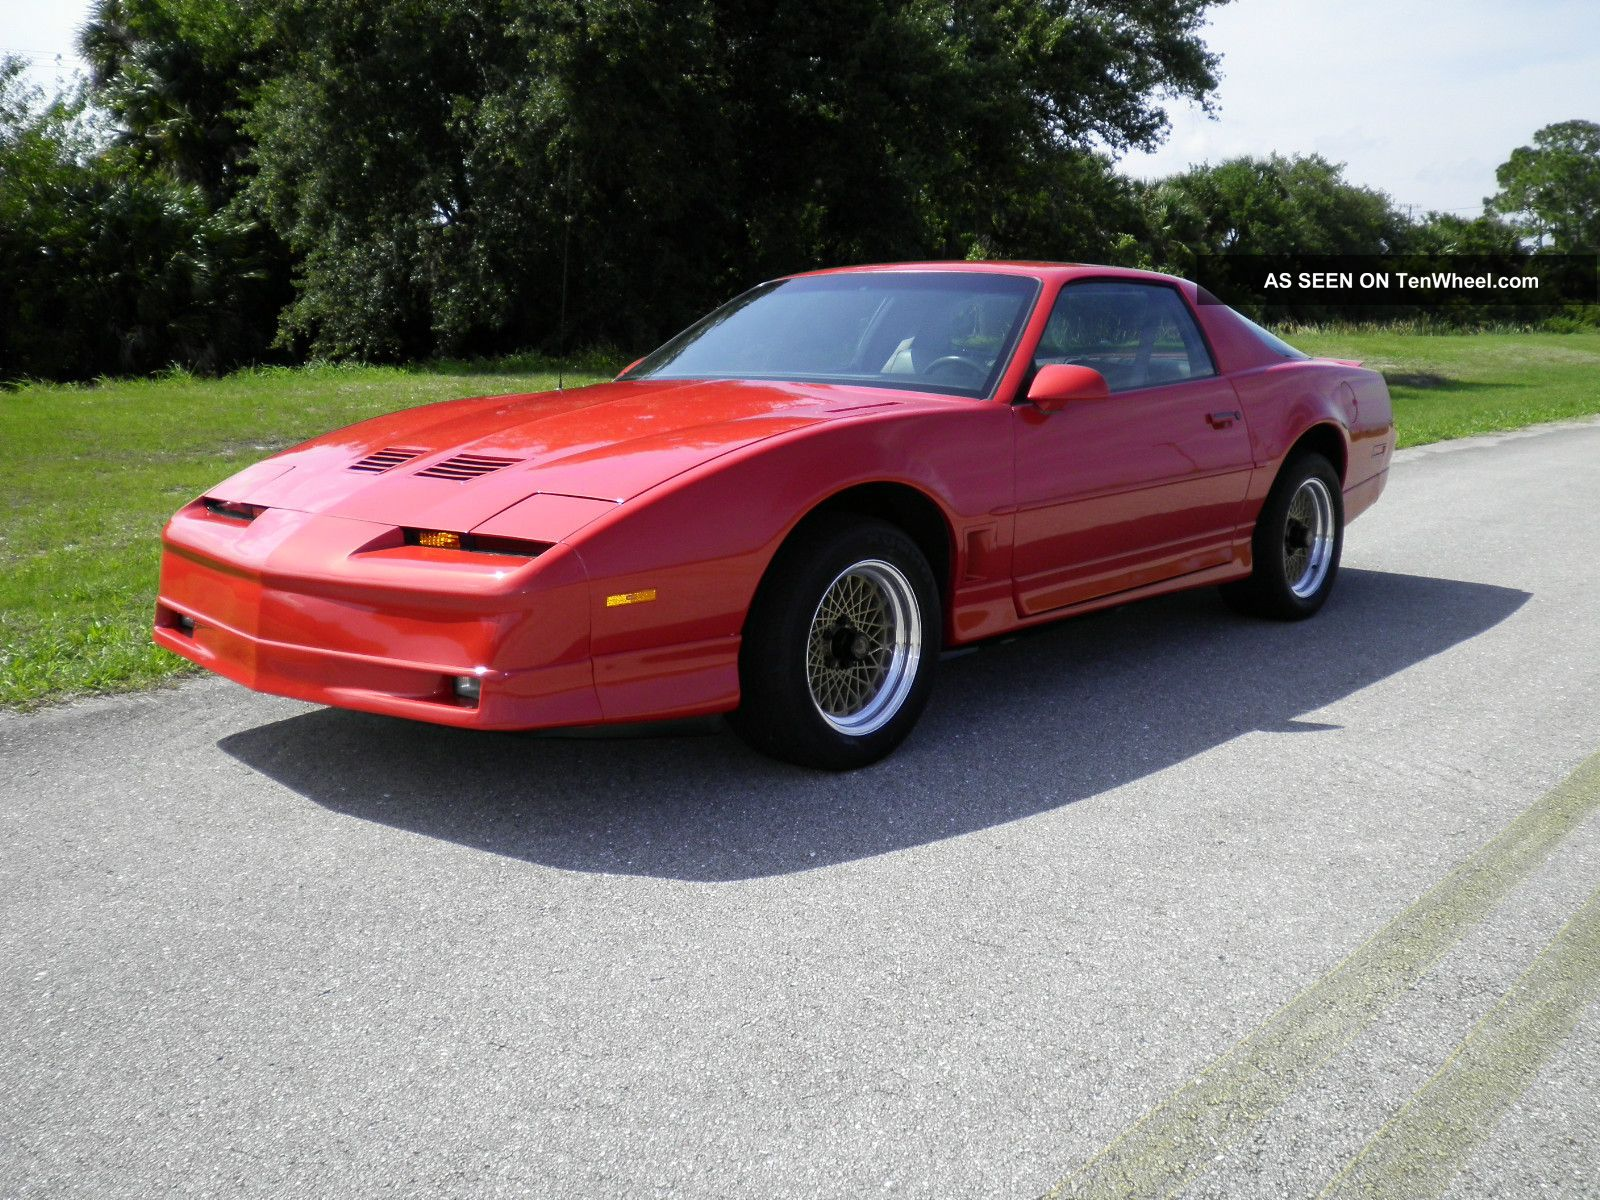 1986 pontiac firebird trans am ws6 six speed hardtop inferno orange 1 of a kind tenwheel